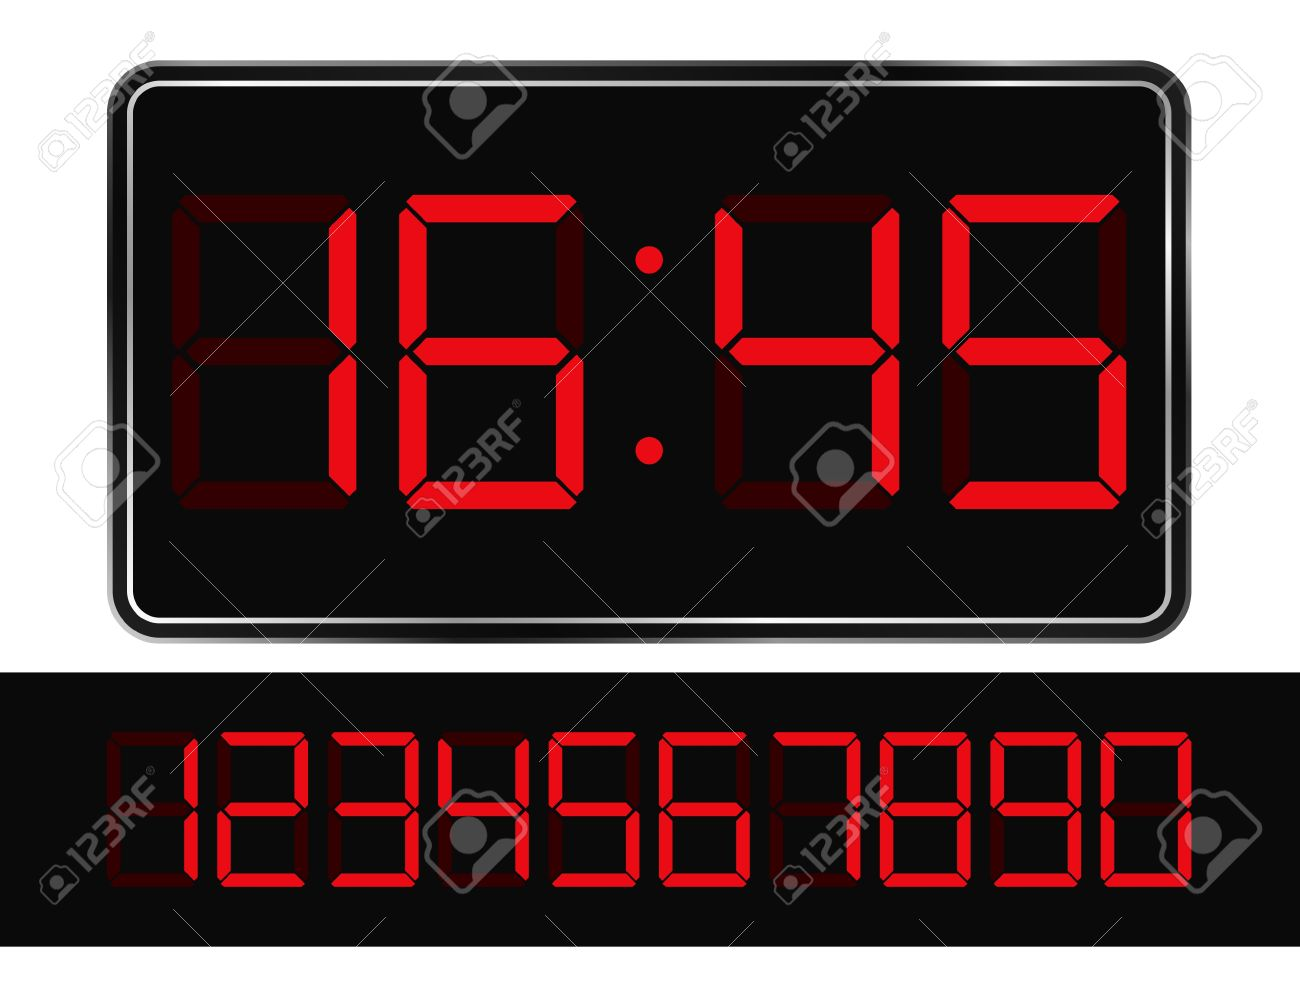 9,960 Time Display Stock Vector Illustration And Royalty Free Time.